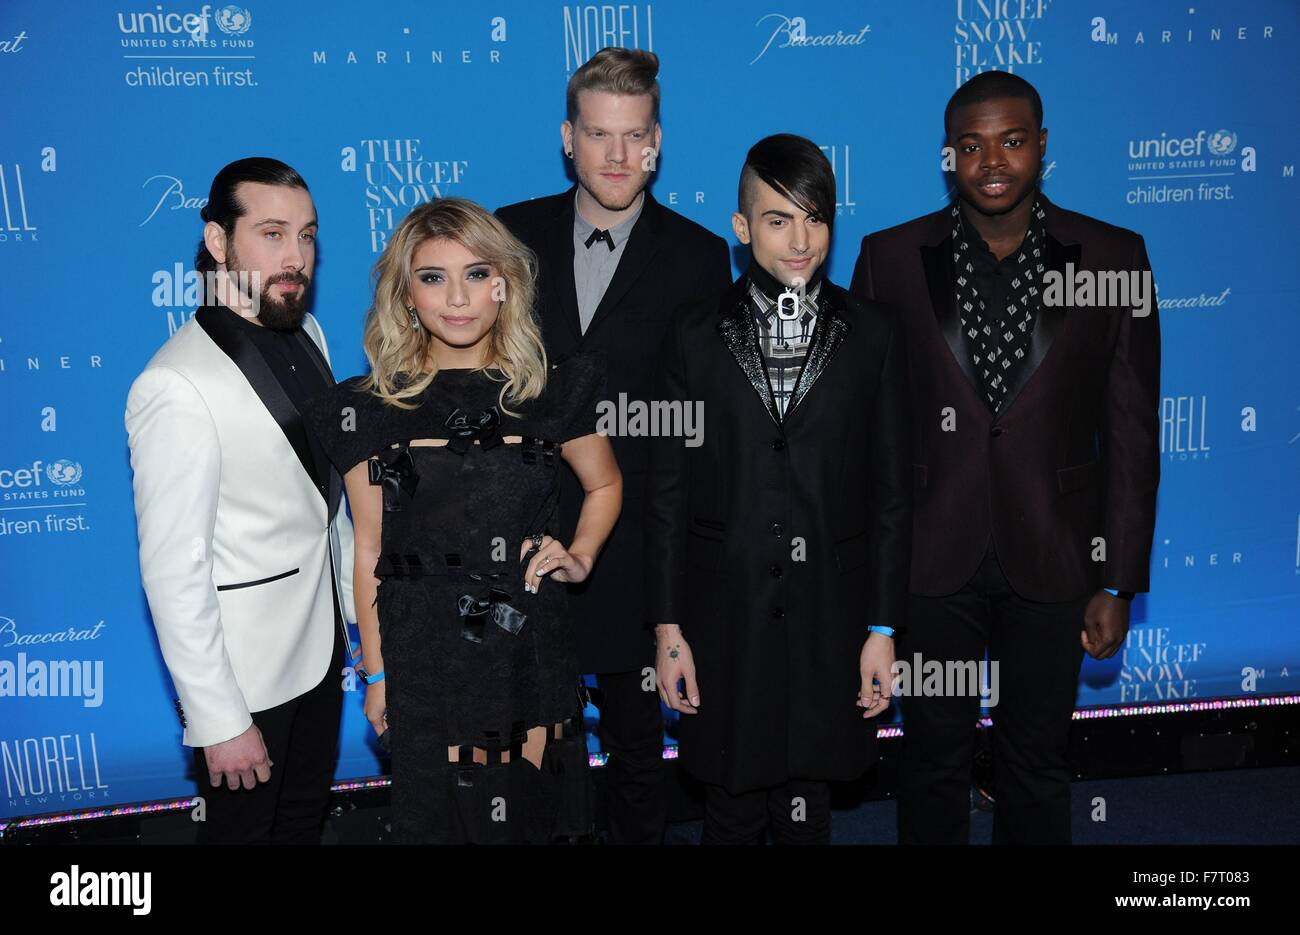 New York, NY, USA. 1st Dec, 2015. Pentatonix at arrivals for 11th Annual UNICEF Snowflake Ball, Cipriani Wall Street, Stock Photo